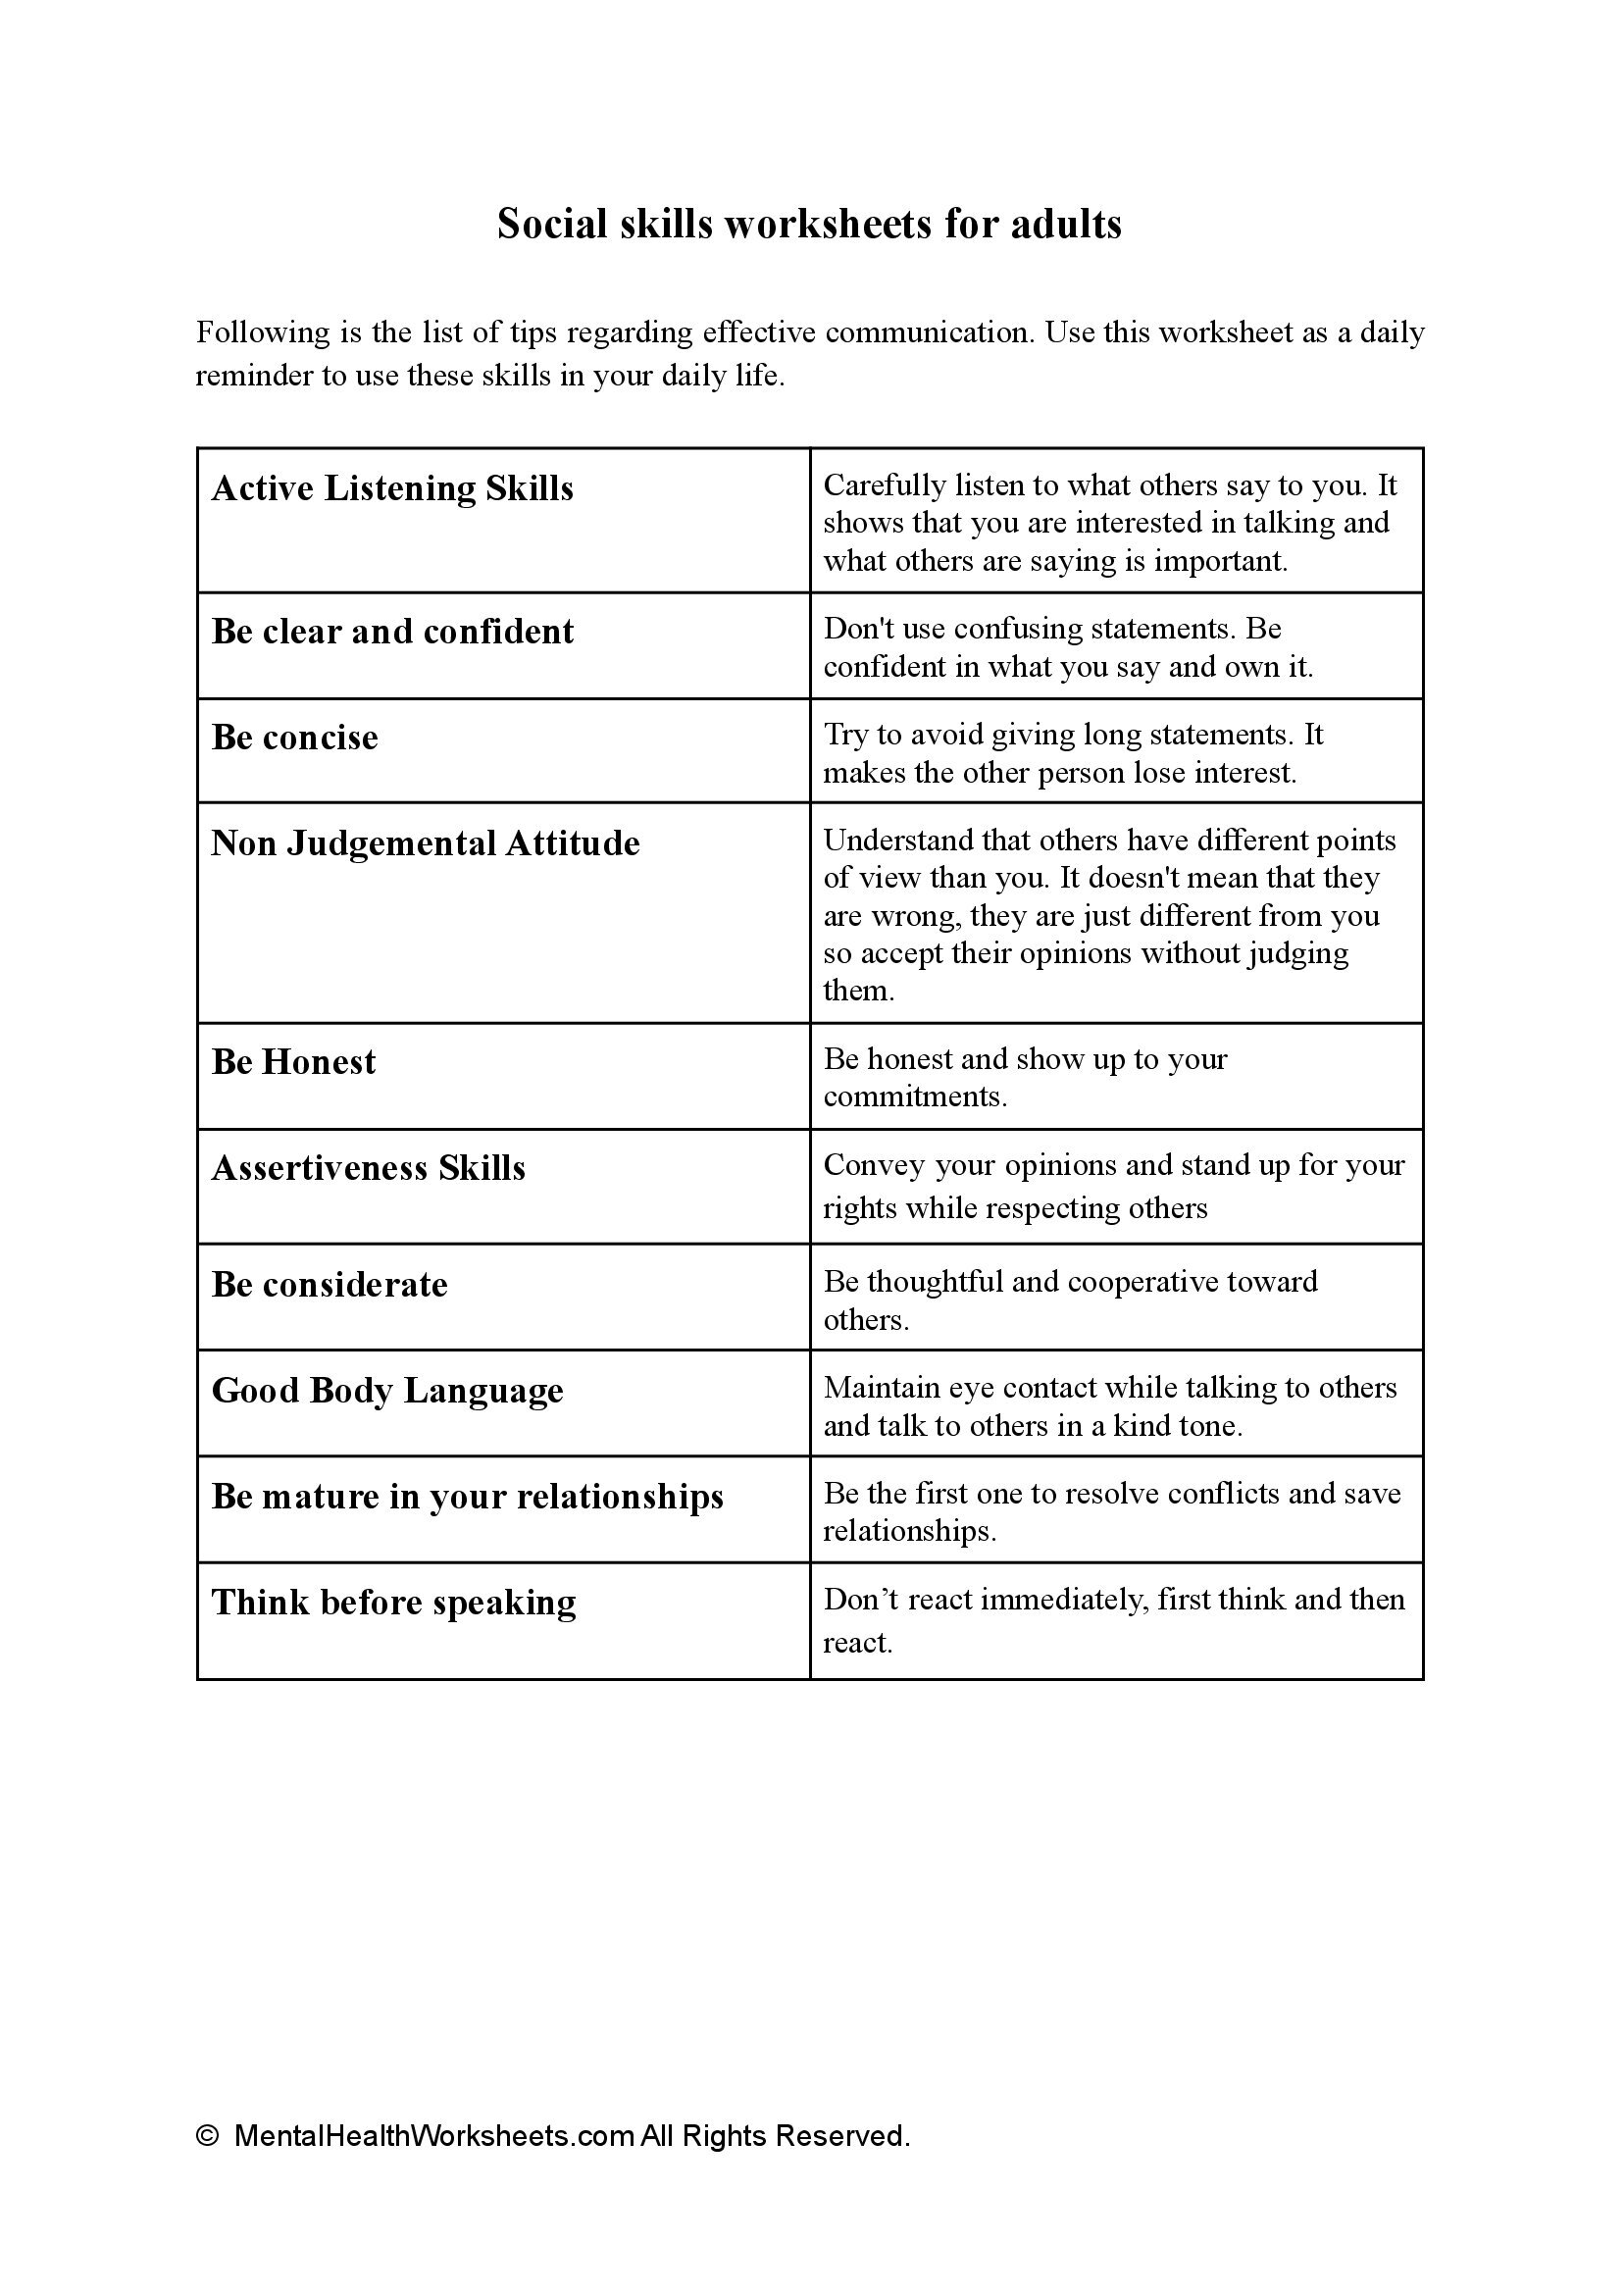 MENTAL HEALTH WORKSHEETS FOR ADULTS